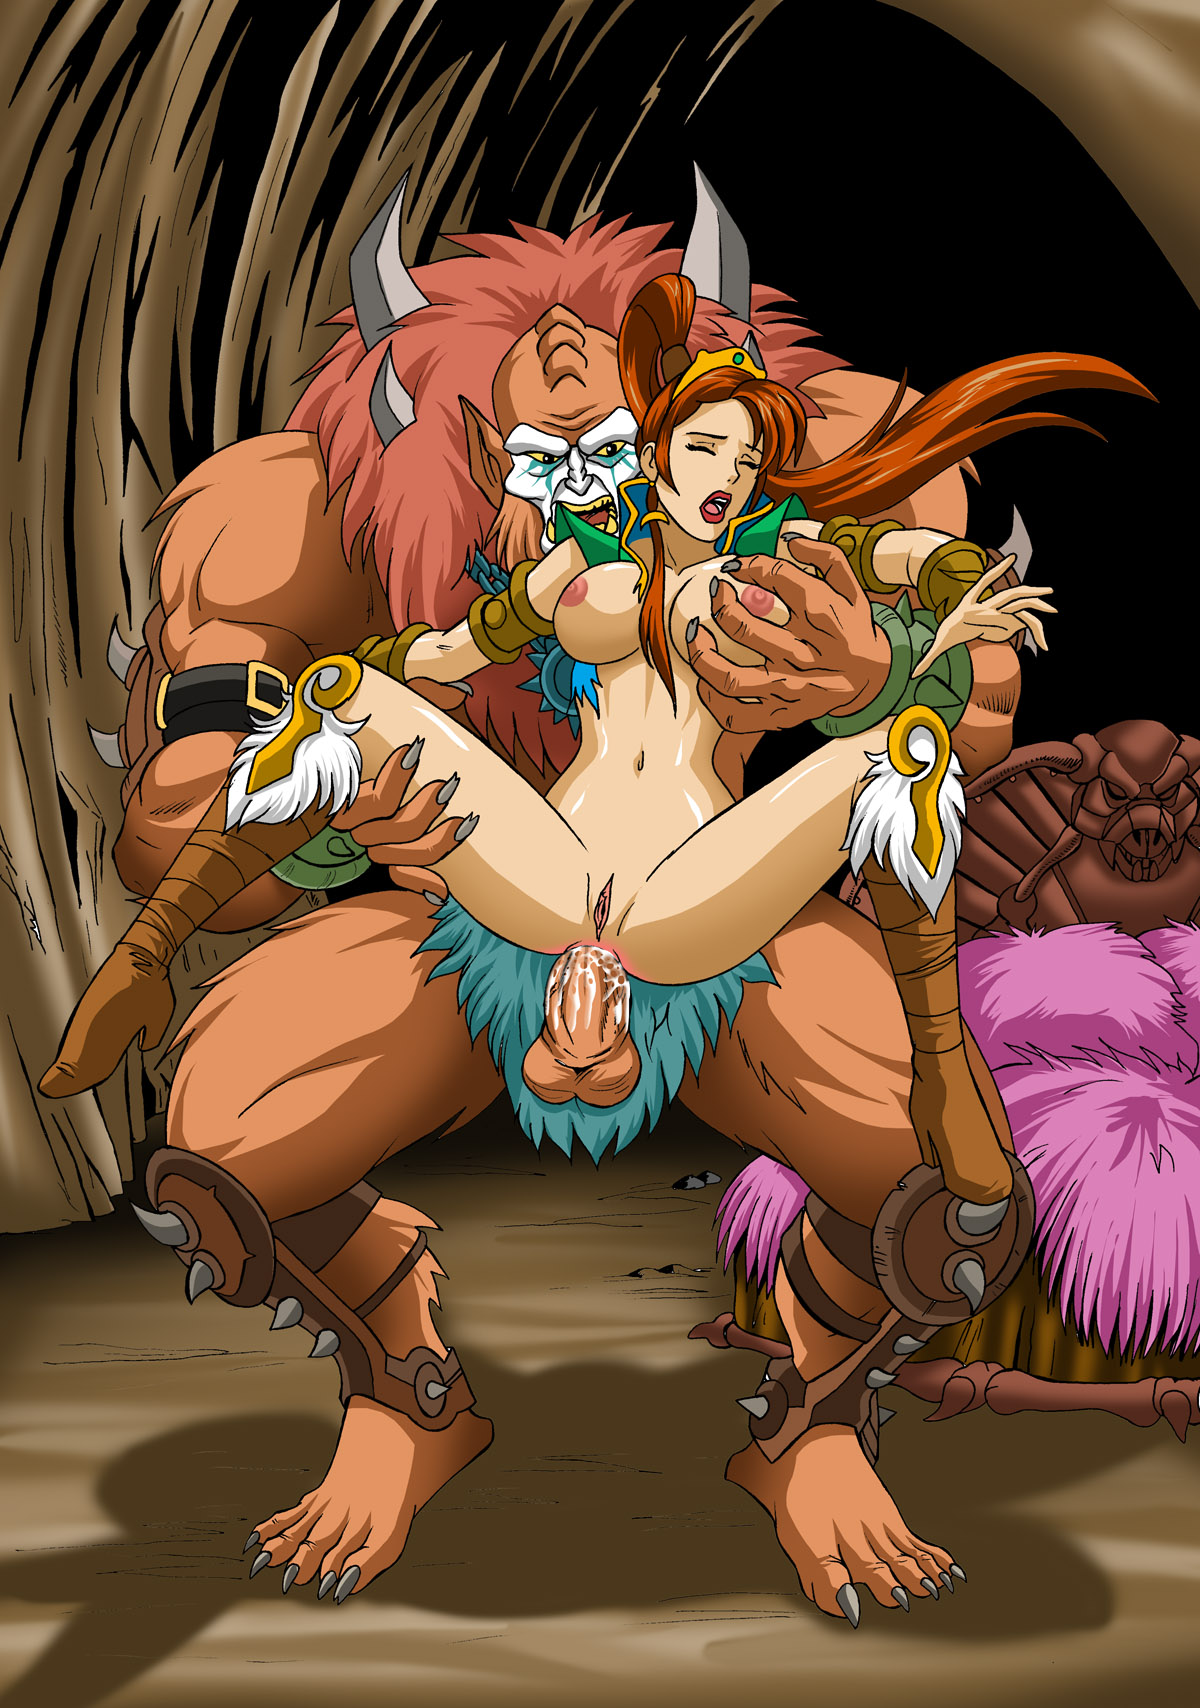 Free monster girl cartoon porn pictures naked toons